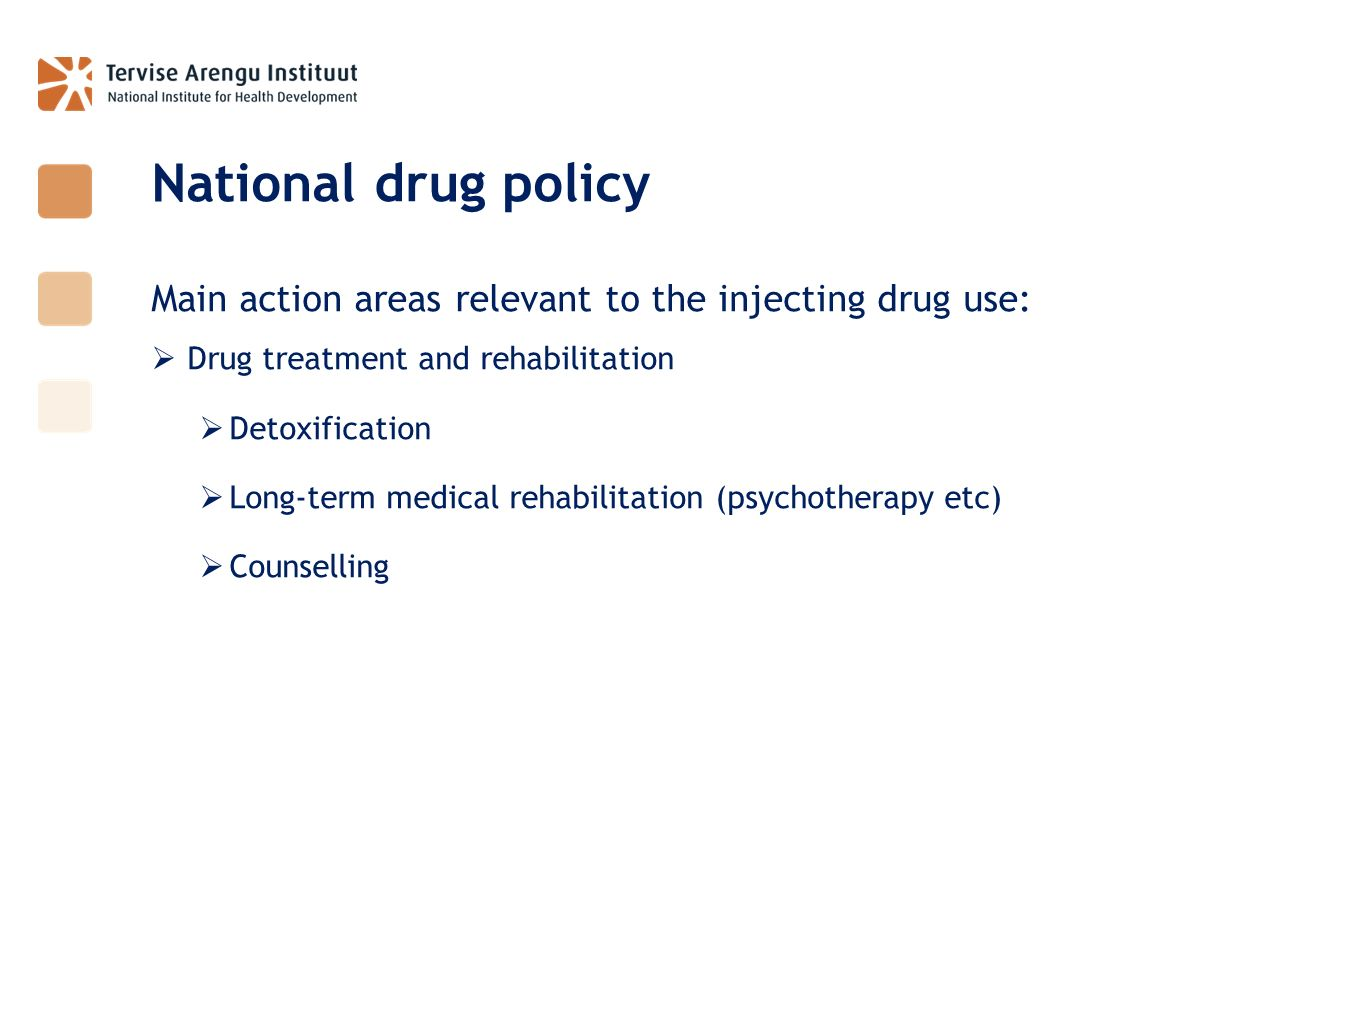 National drug policy Main action areas relevant to the injecting drug use: Drug treatment and rehabilitation.